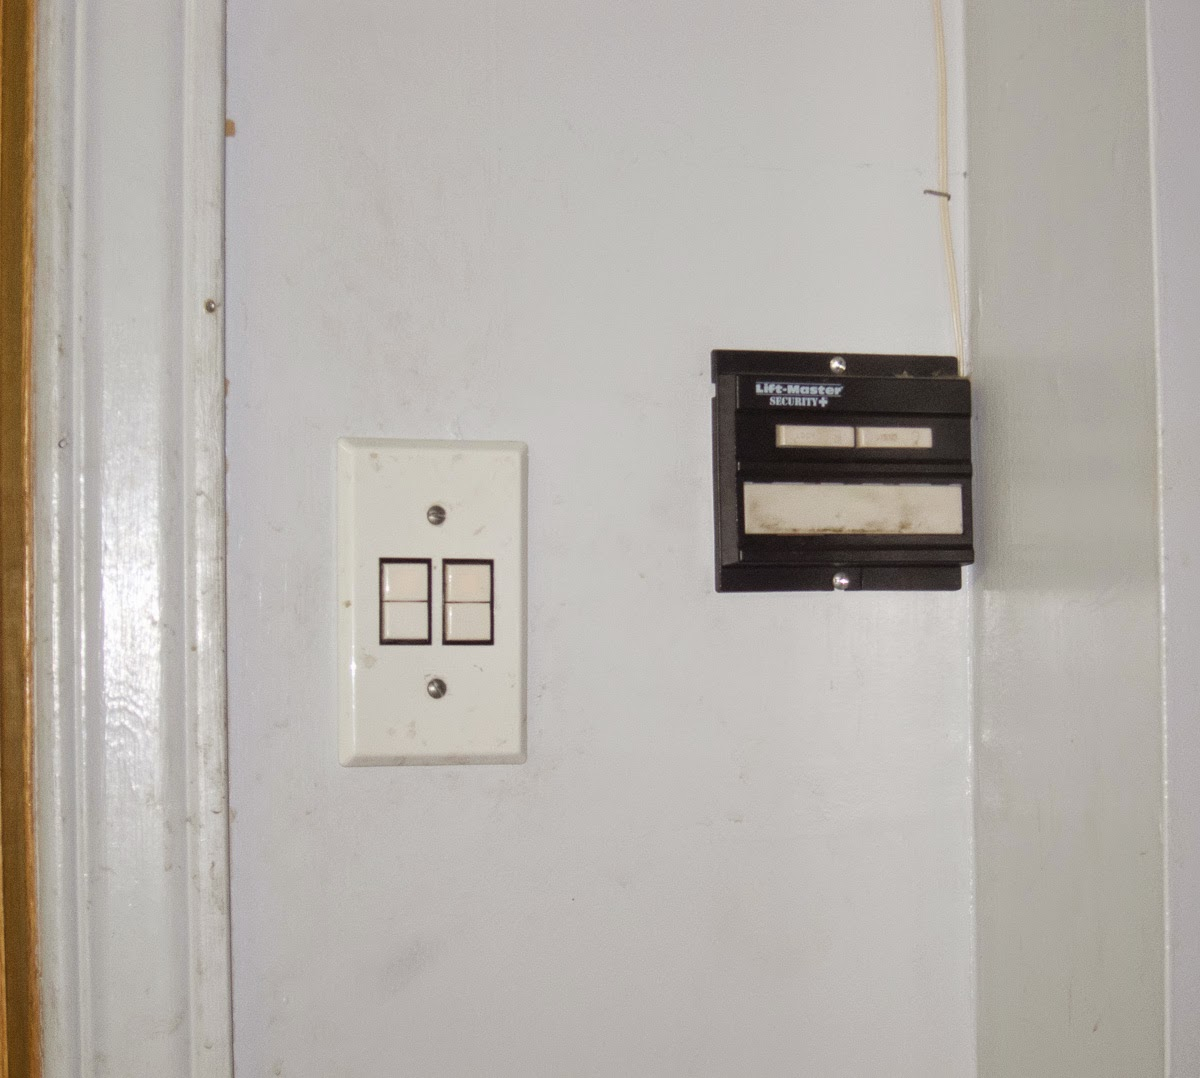 Glen S Home Automation Dealing With Wall Acne